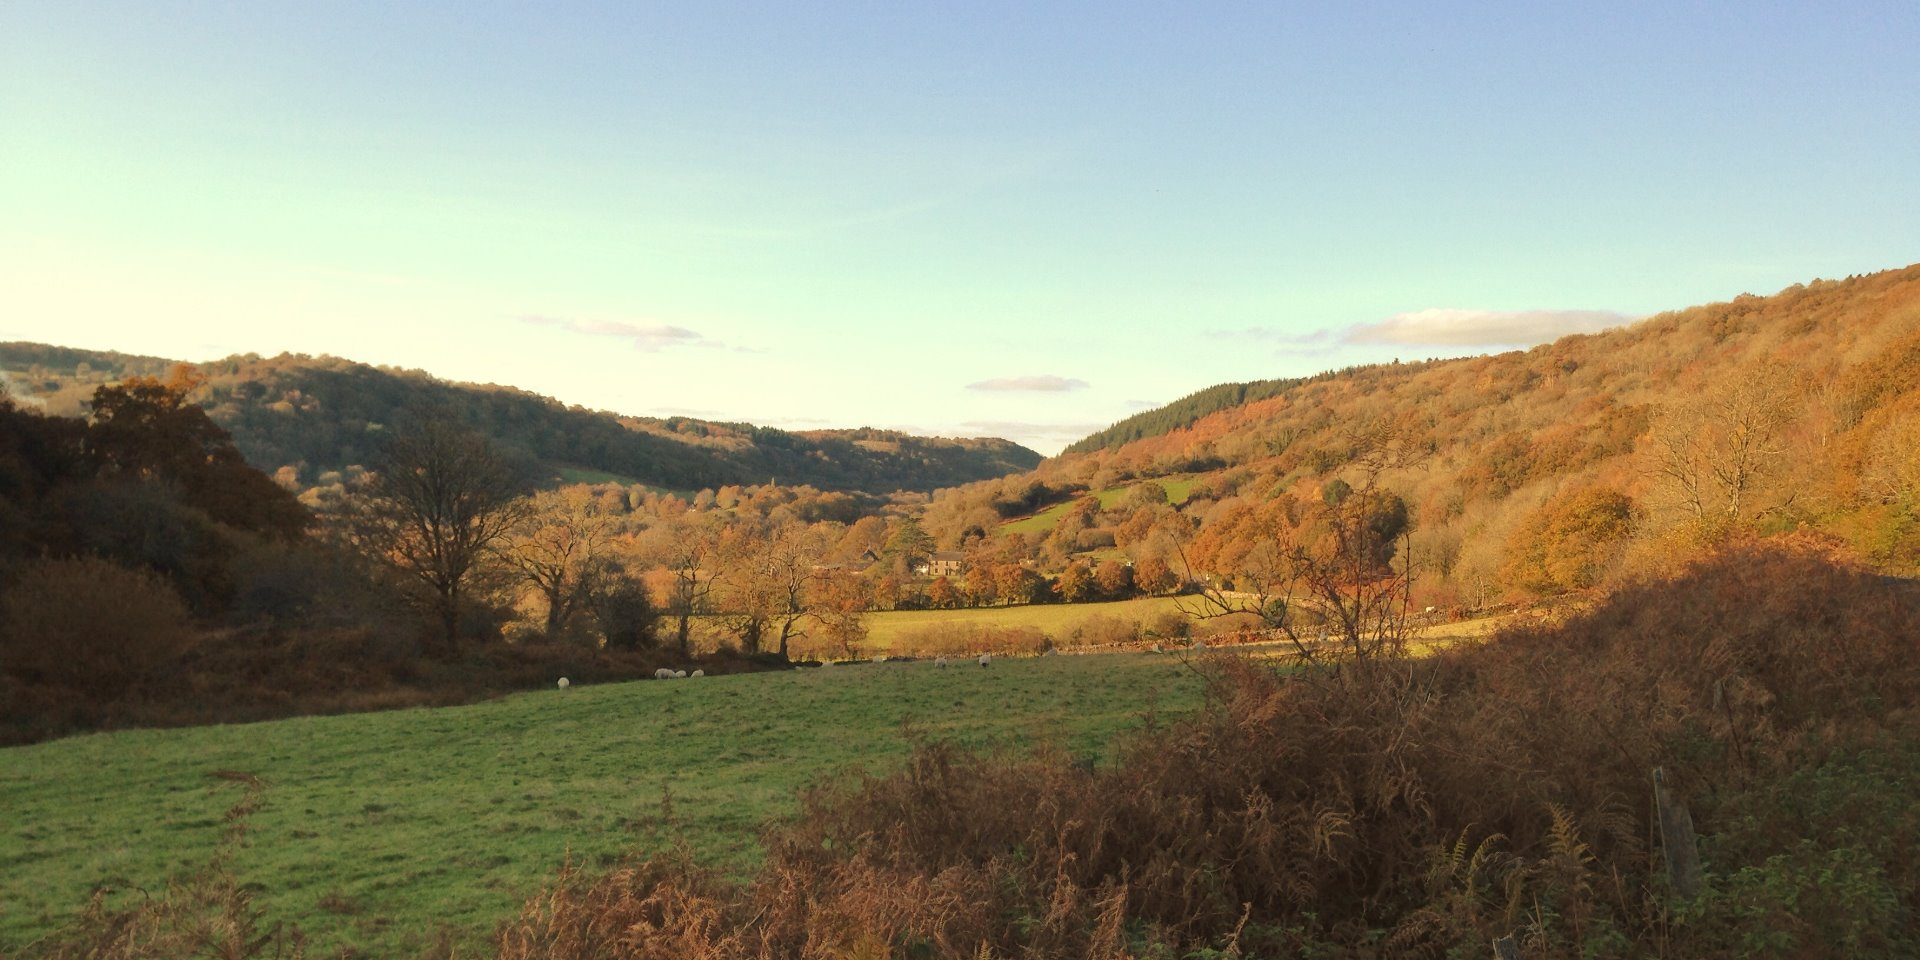 View of the Wray Valley looking from Bovey towards Lustleigh